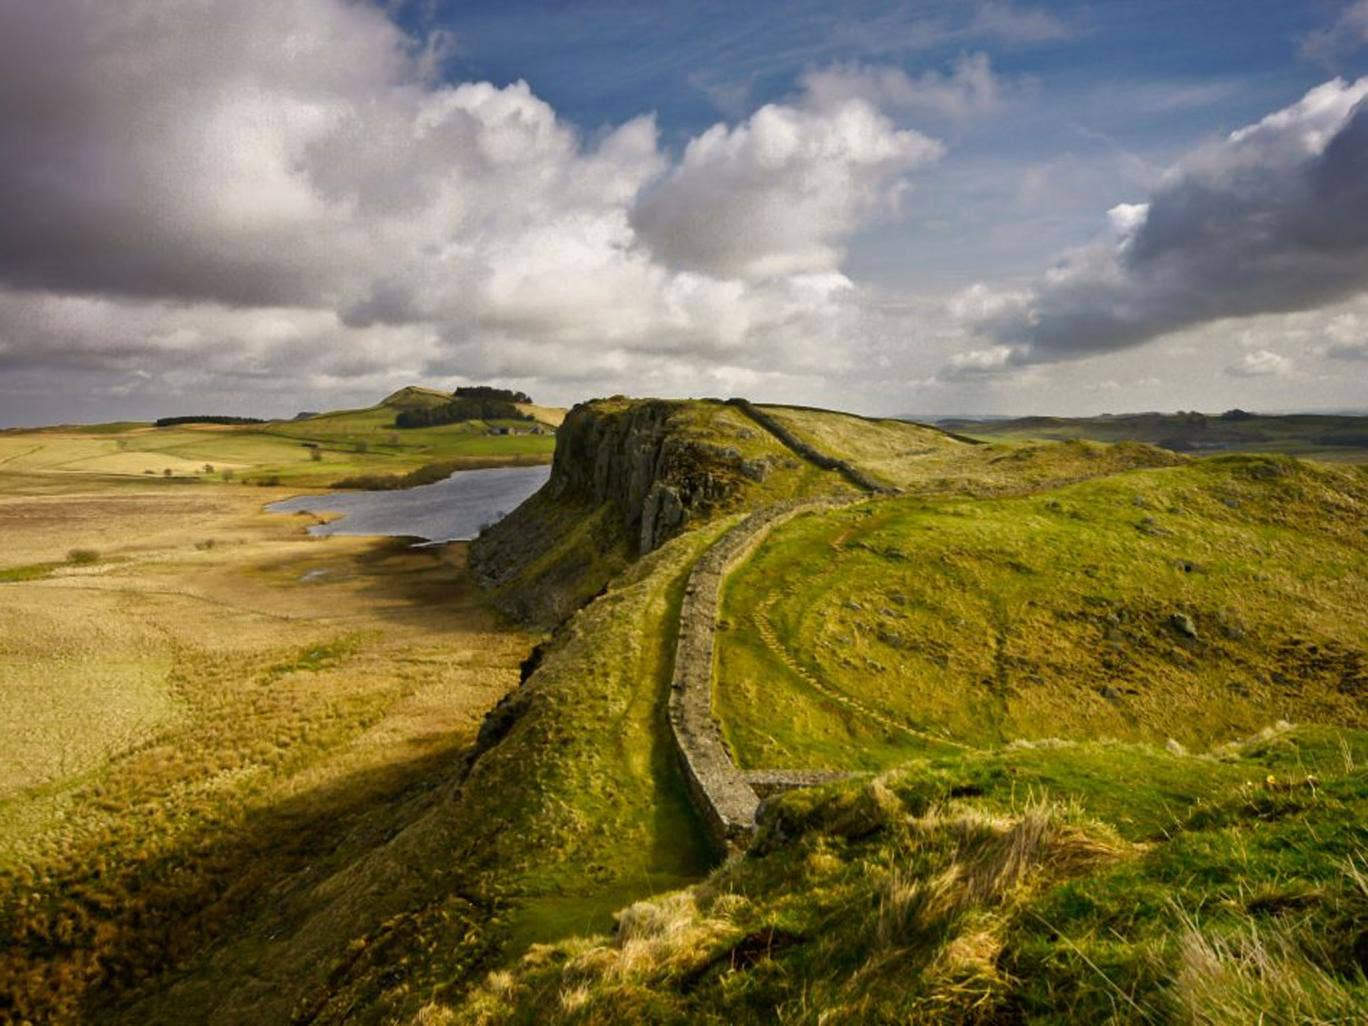 Stretching the breadth of northern England, Hadrian's Wall is a majestic reminder of the ambition and might of the Roman Empire's conquest in Britain